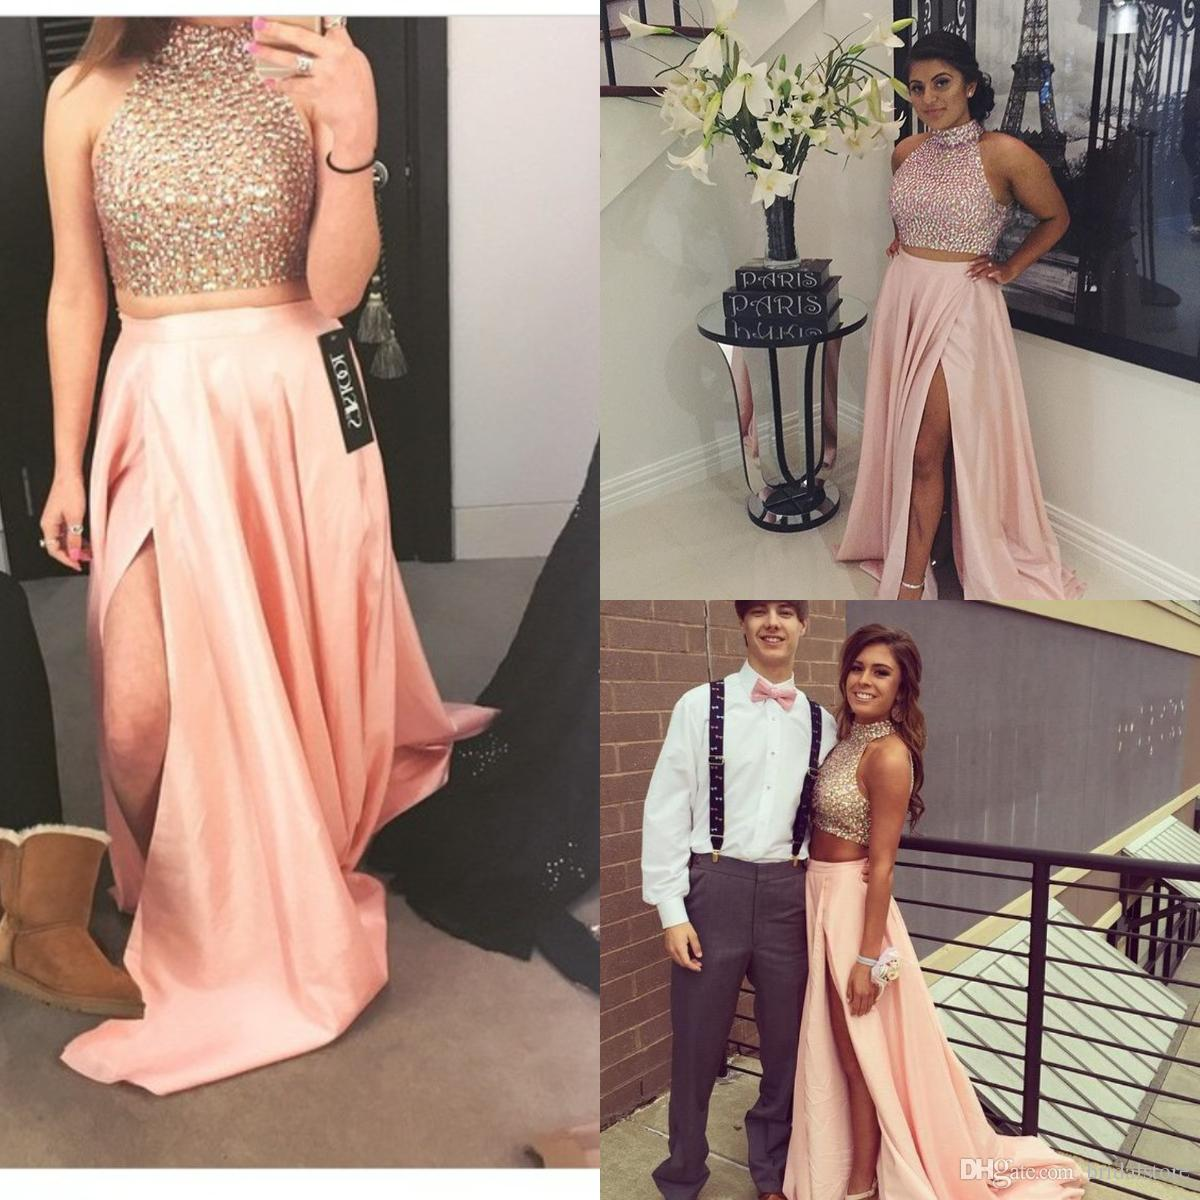 0952ae76aa07 Cute Pink Two Piece Prom Dresses Long Sexy Crop Top Beaded Elegant Formal Evening  Dress Keyhole Back Pretty Party Gown With Slit Teen Short Prom Dress Uk ...